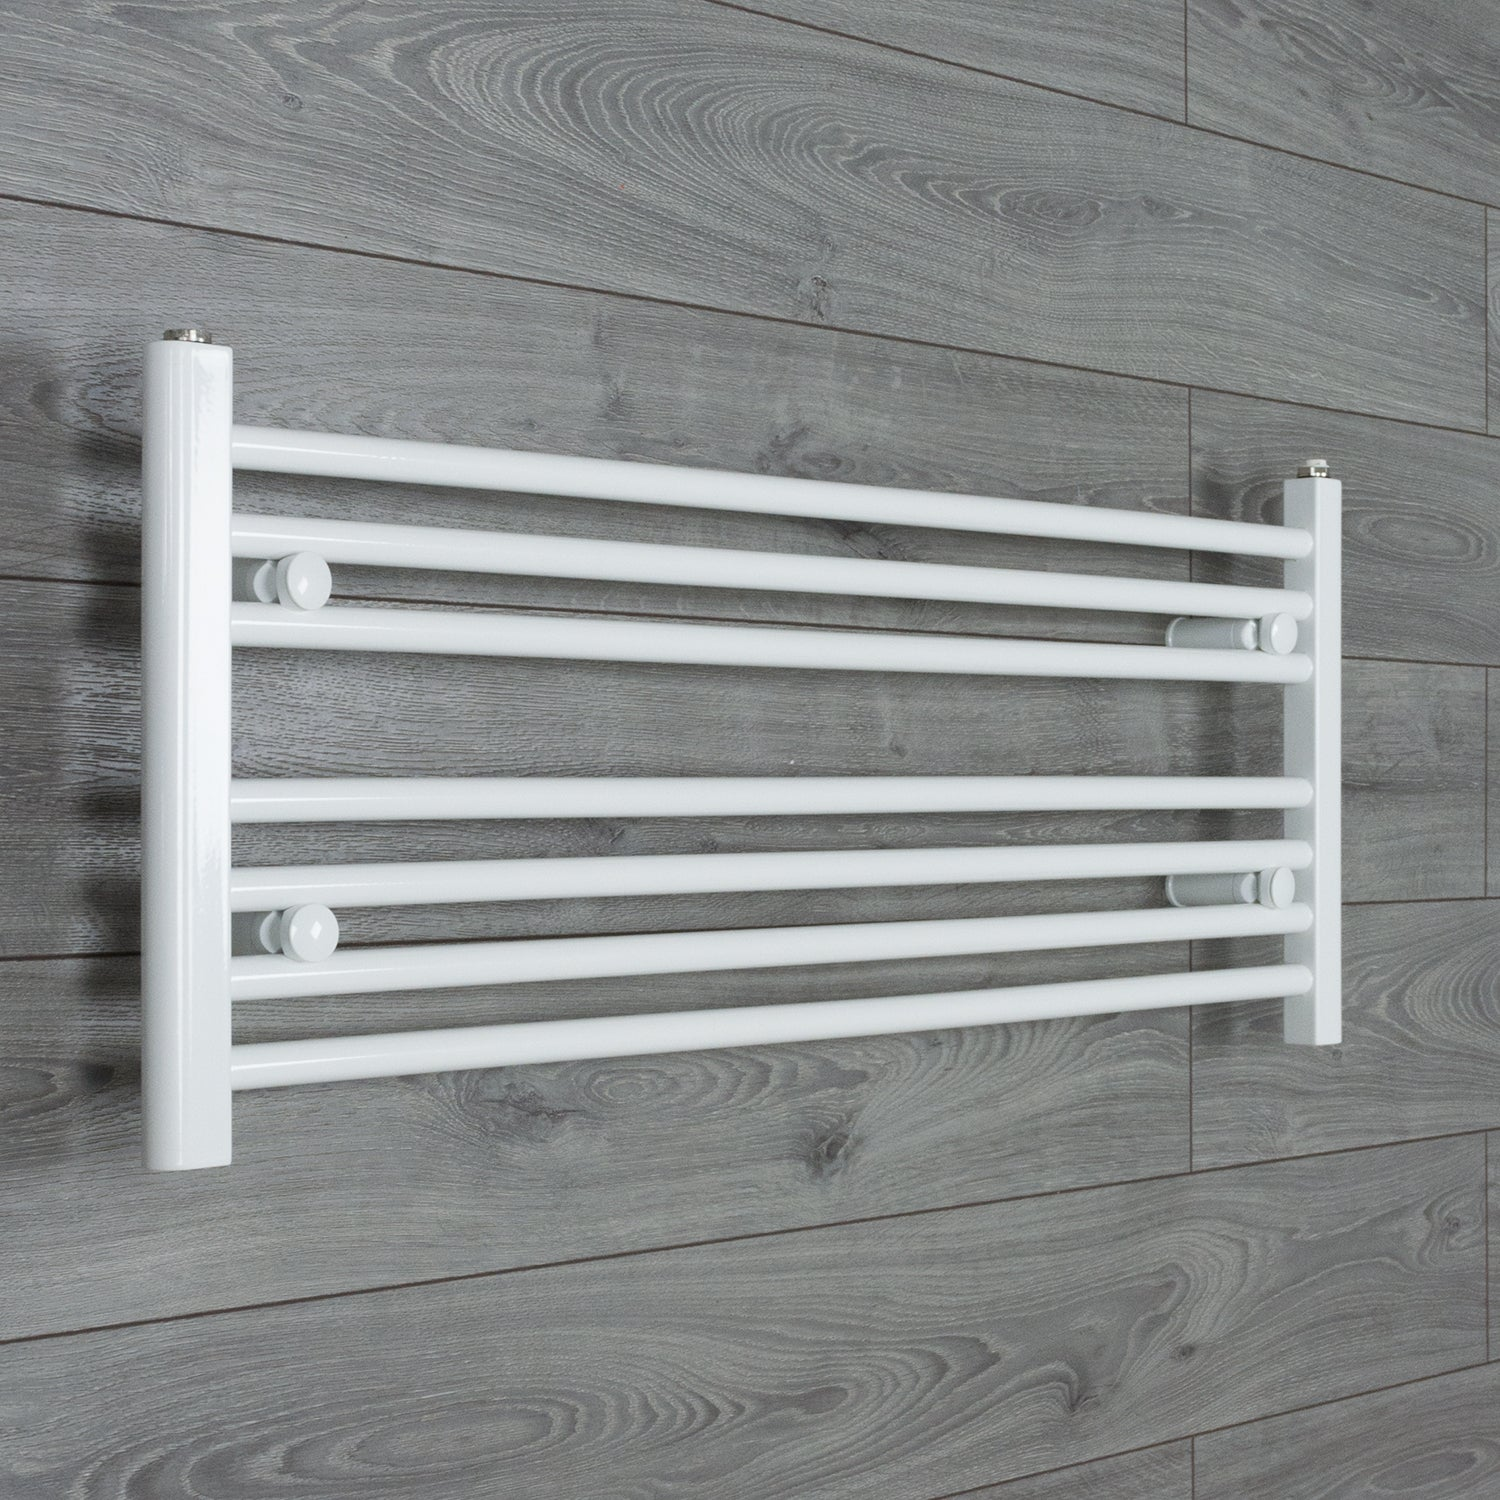 1000x400mm Flat White Electric Element Towel Rail